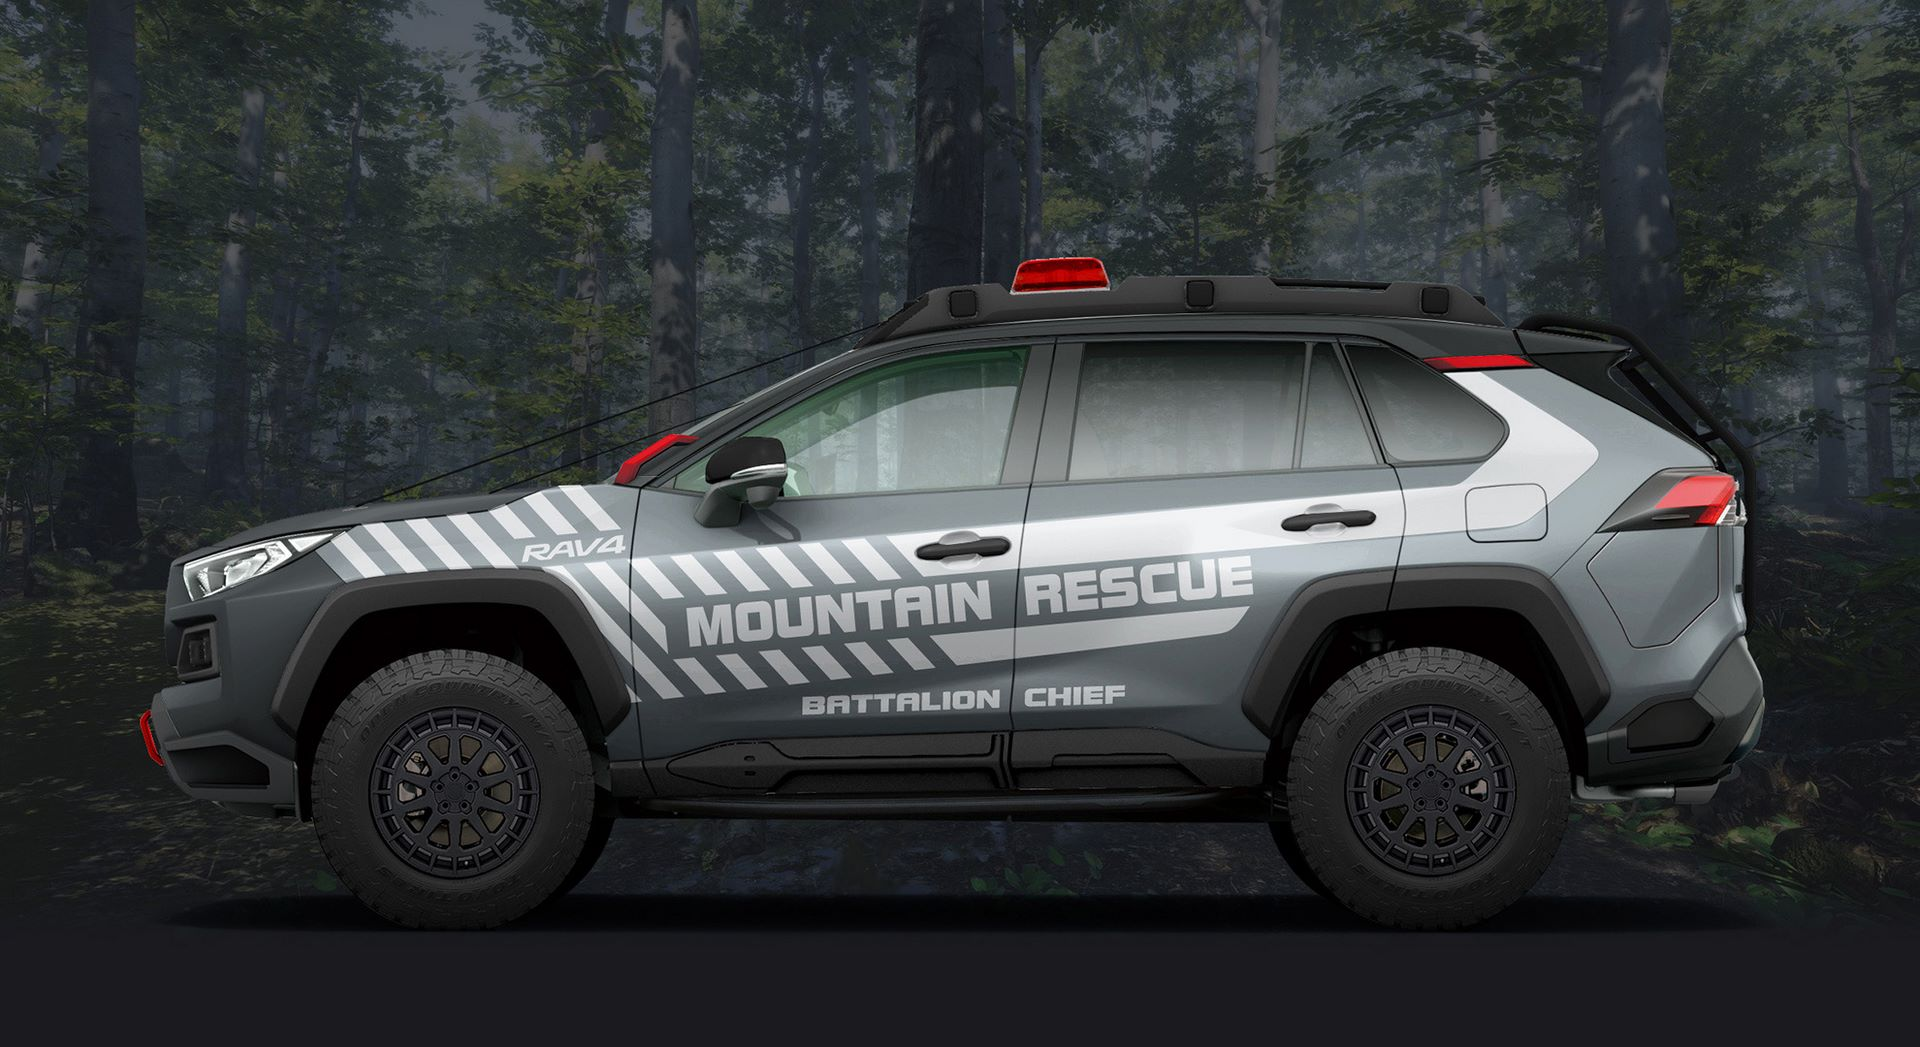 Toyota-RAV4-Mountain-Rescue-Concept-3